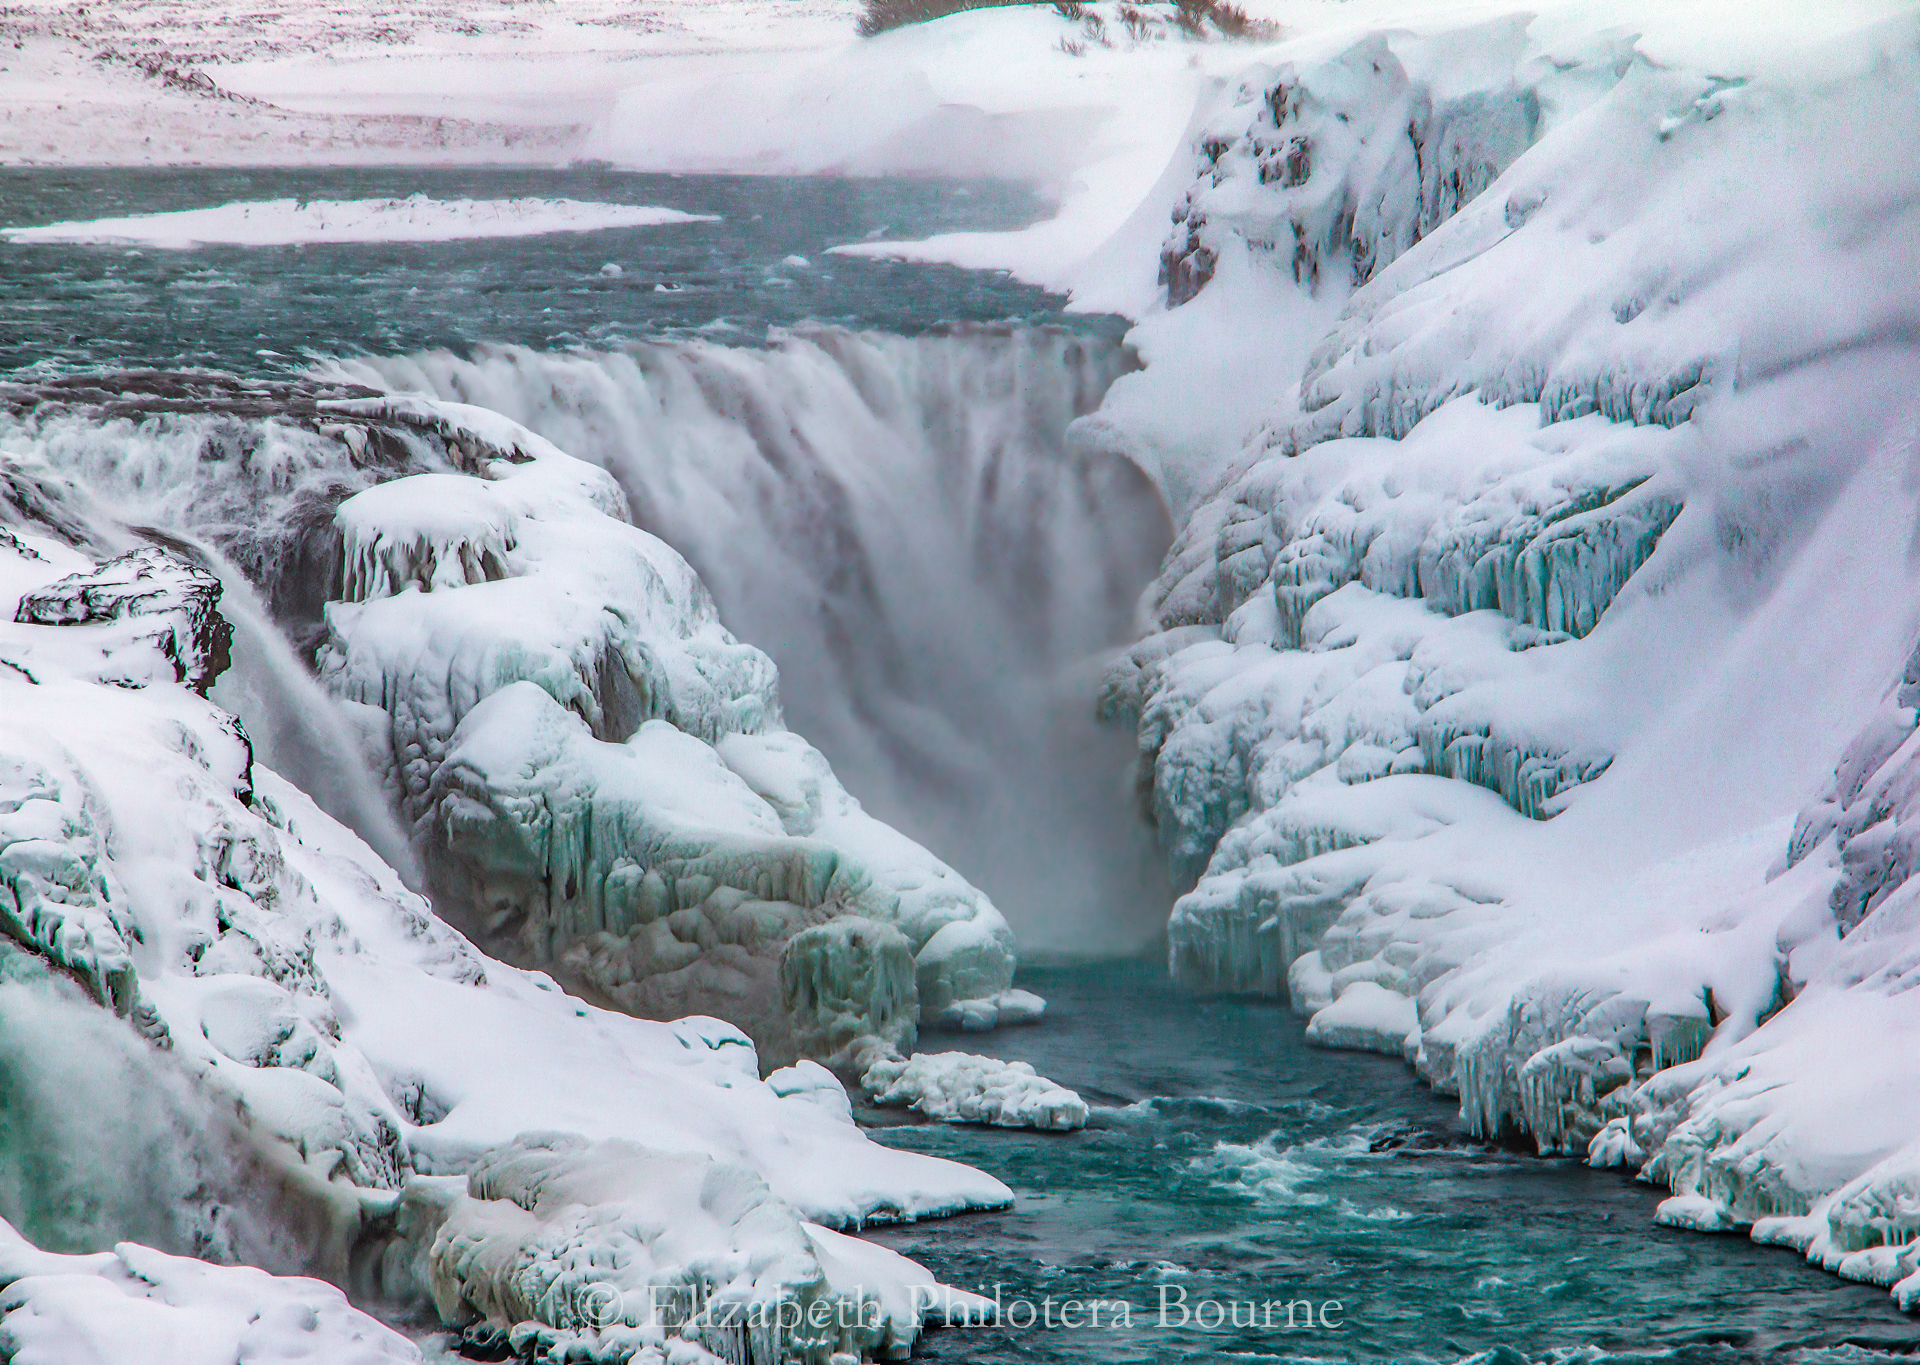 Frozen Gulfoss water fall surrounded by icicles and snow in Iceland on the Golden Circle